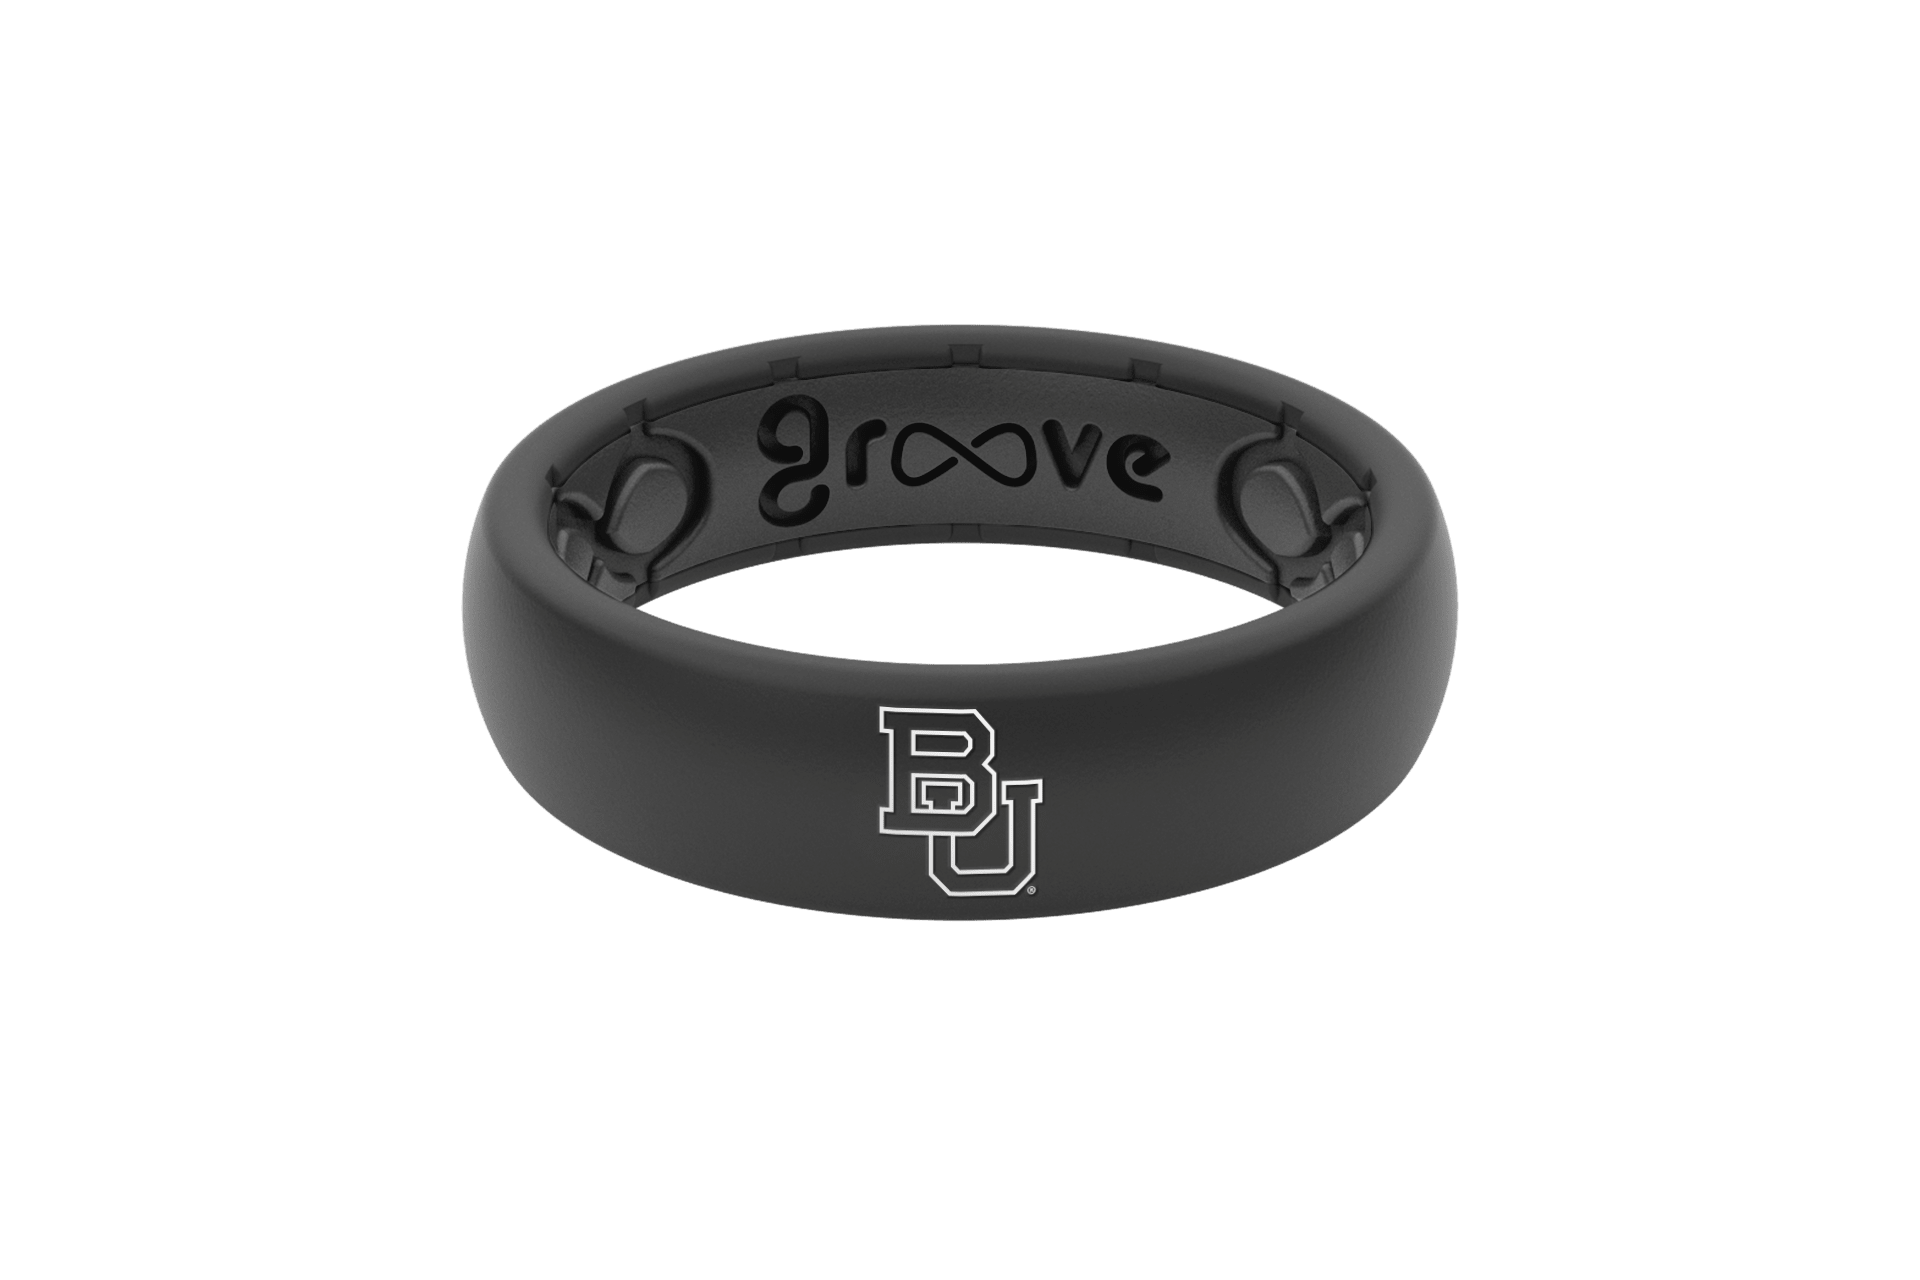 Thin College Baylor - Groove Life Silicone Wedding Rings